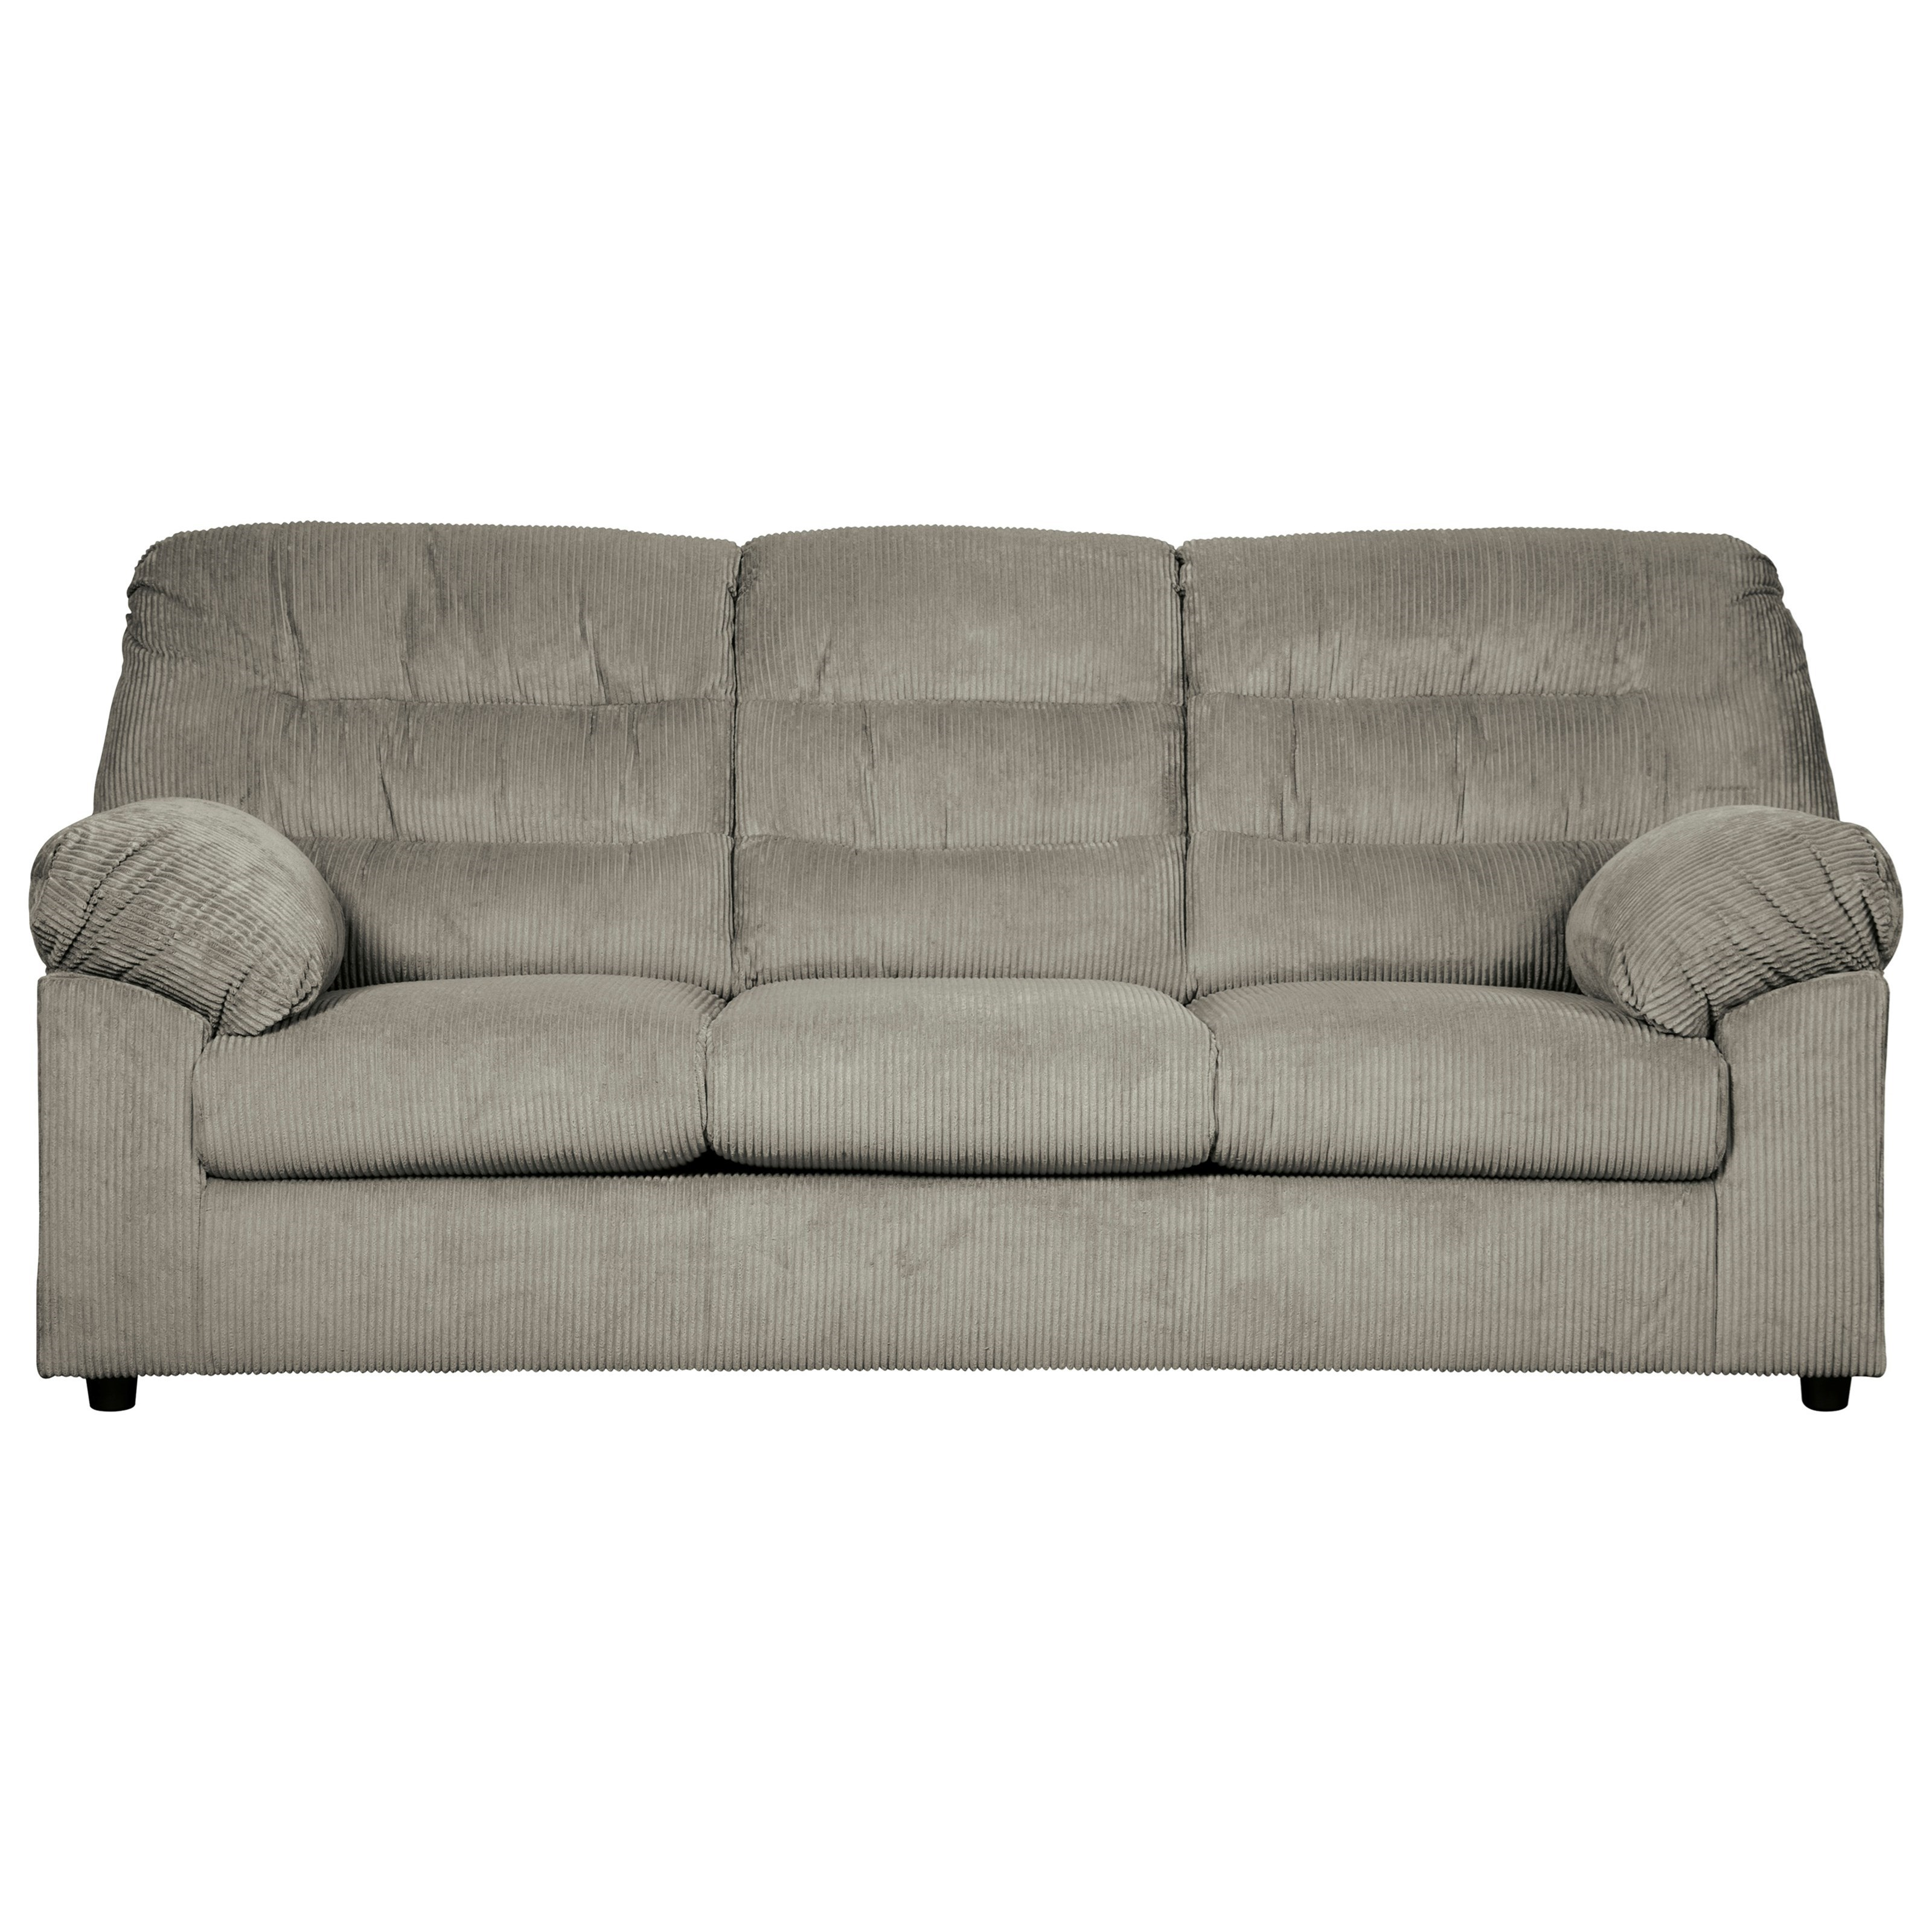 sofascouch loveseat a your sofa bed beautiful com modern with cool pin hide for inspiration